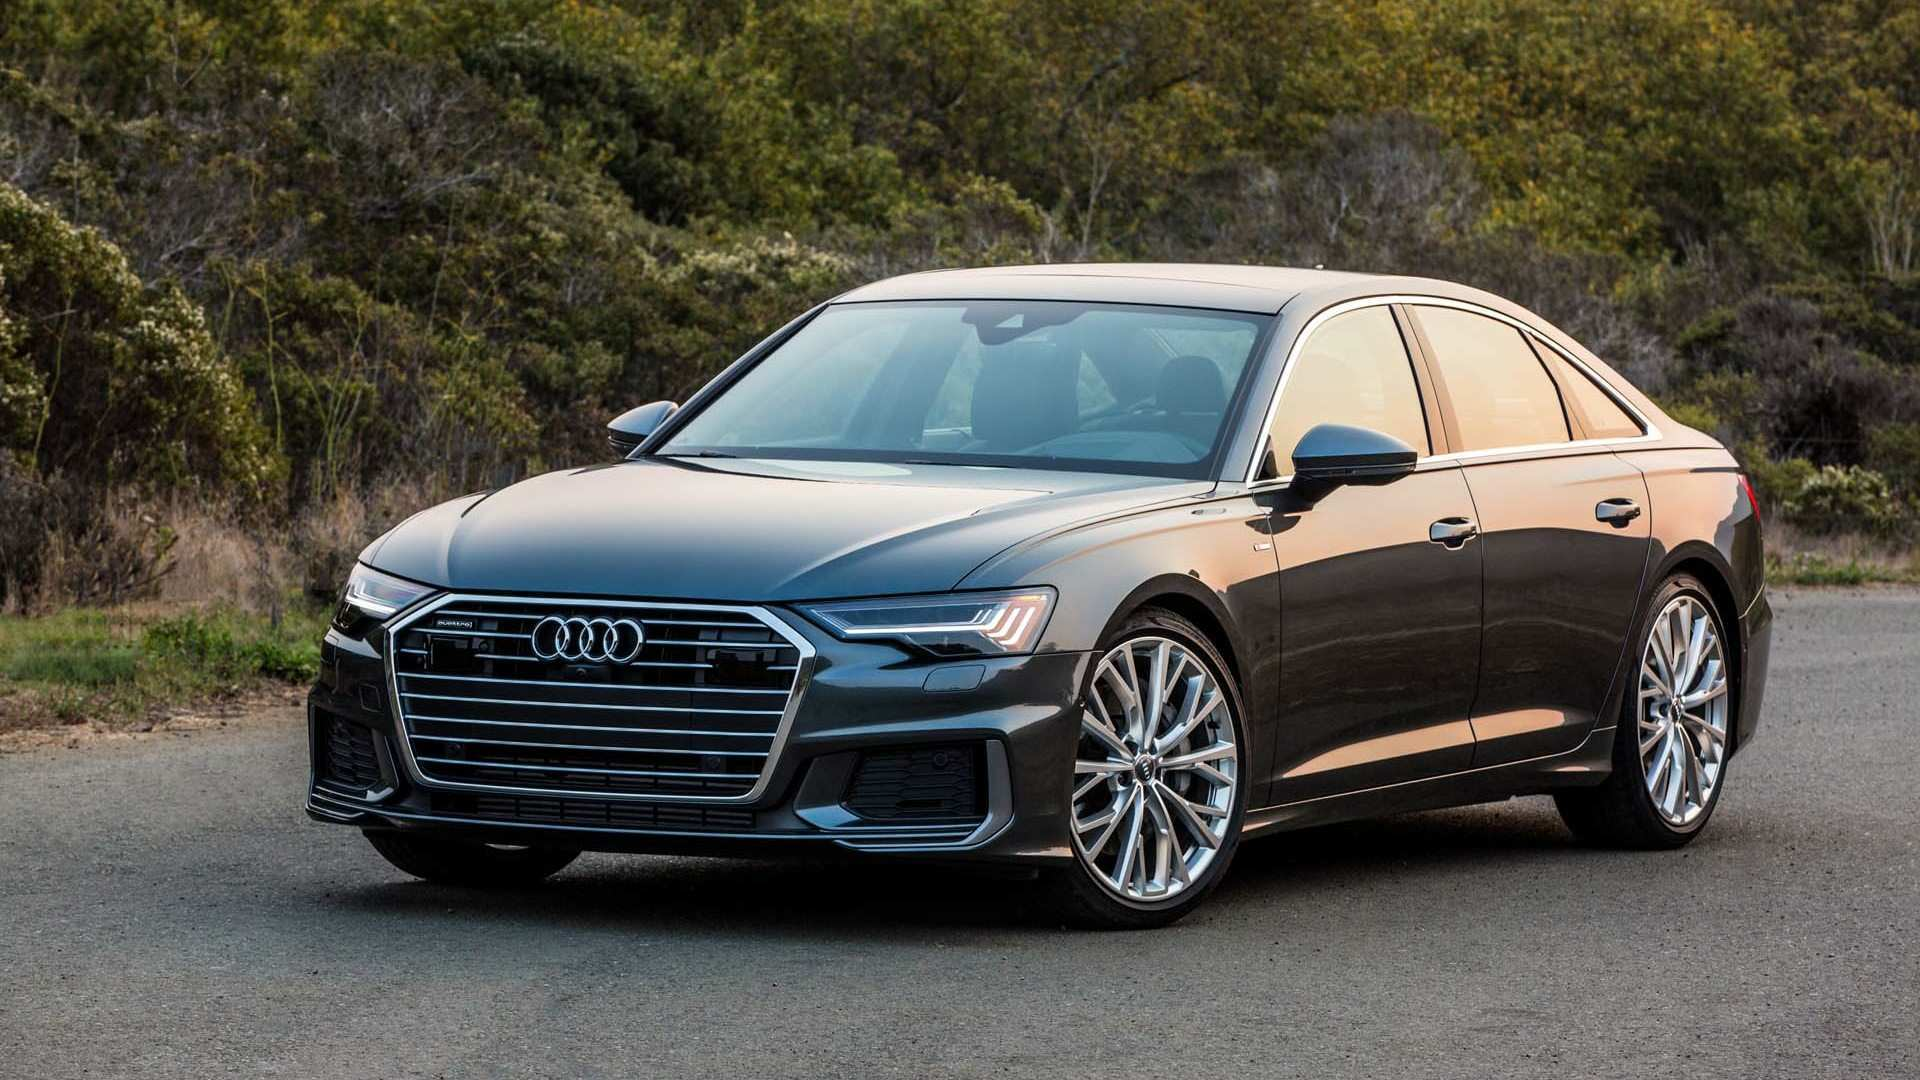 54 All New 2020 The Audi A6 Specs